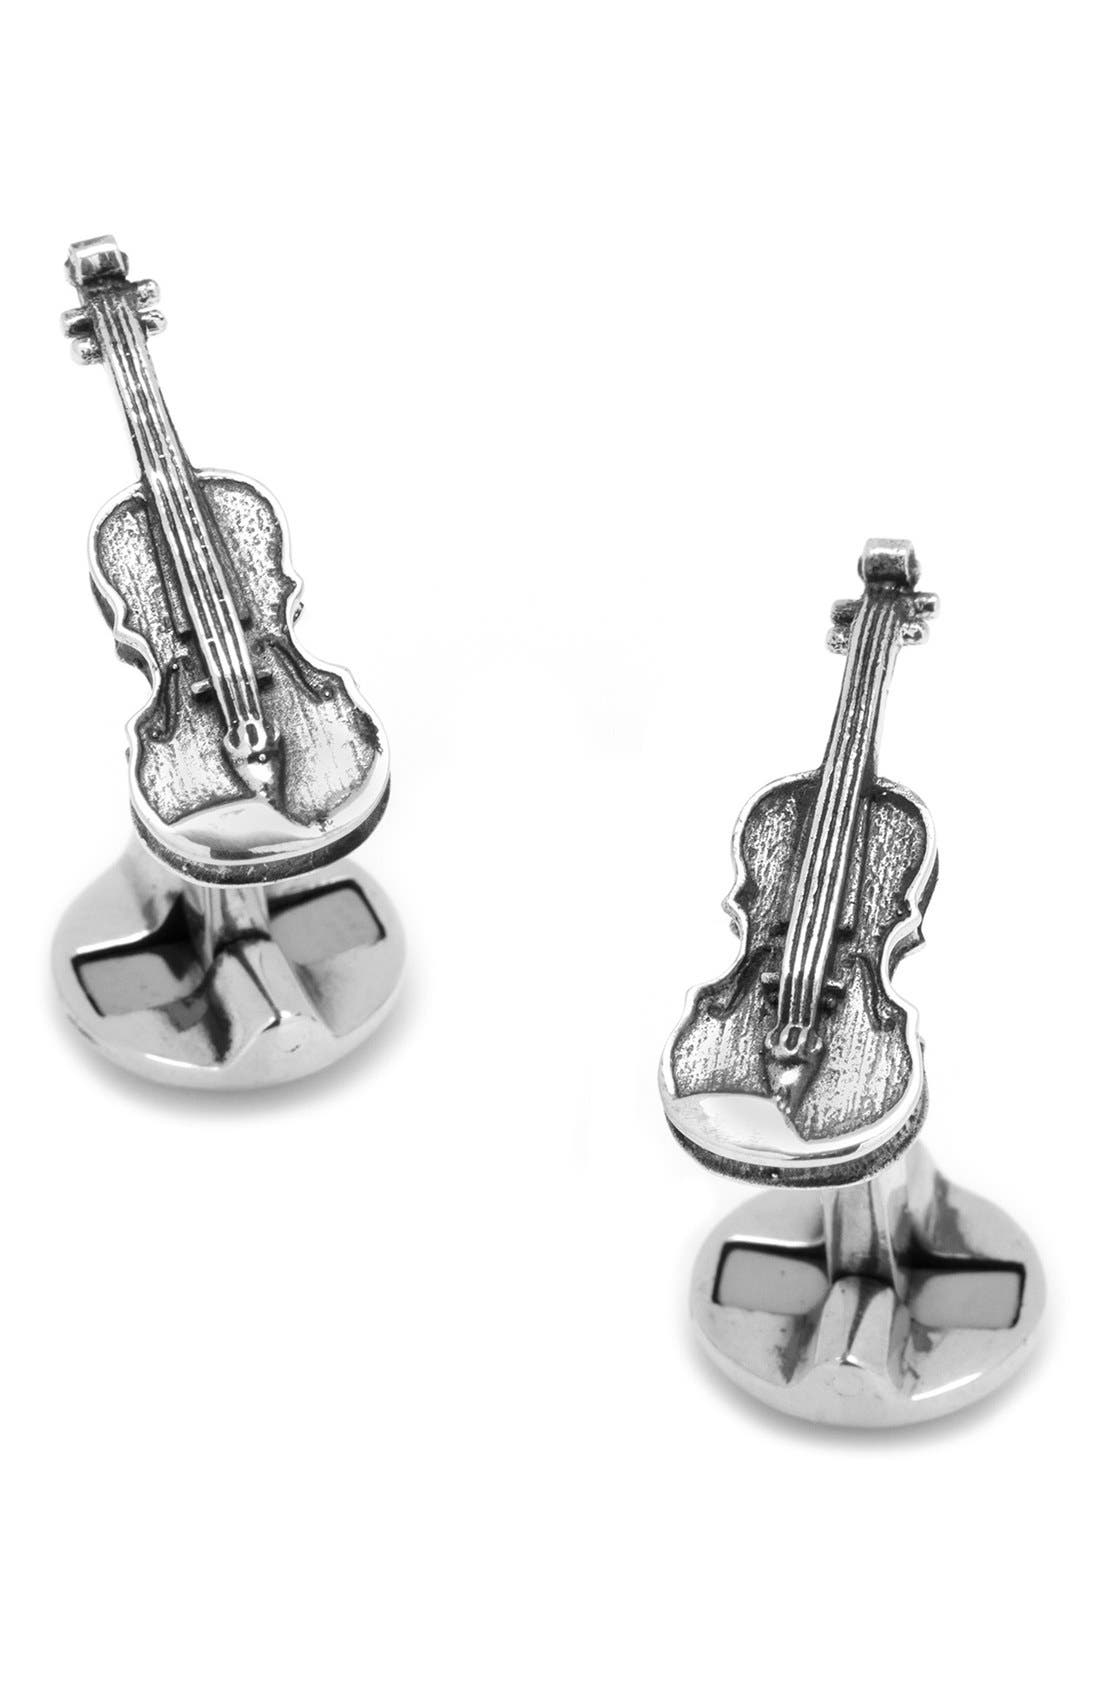 Violin Cuff Links,                             Main thumbnail 1, color,